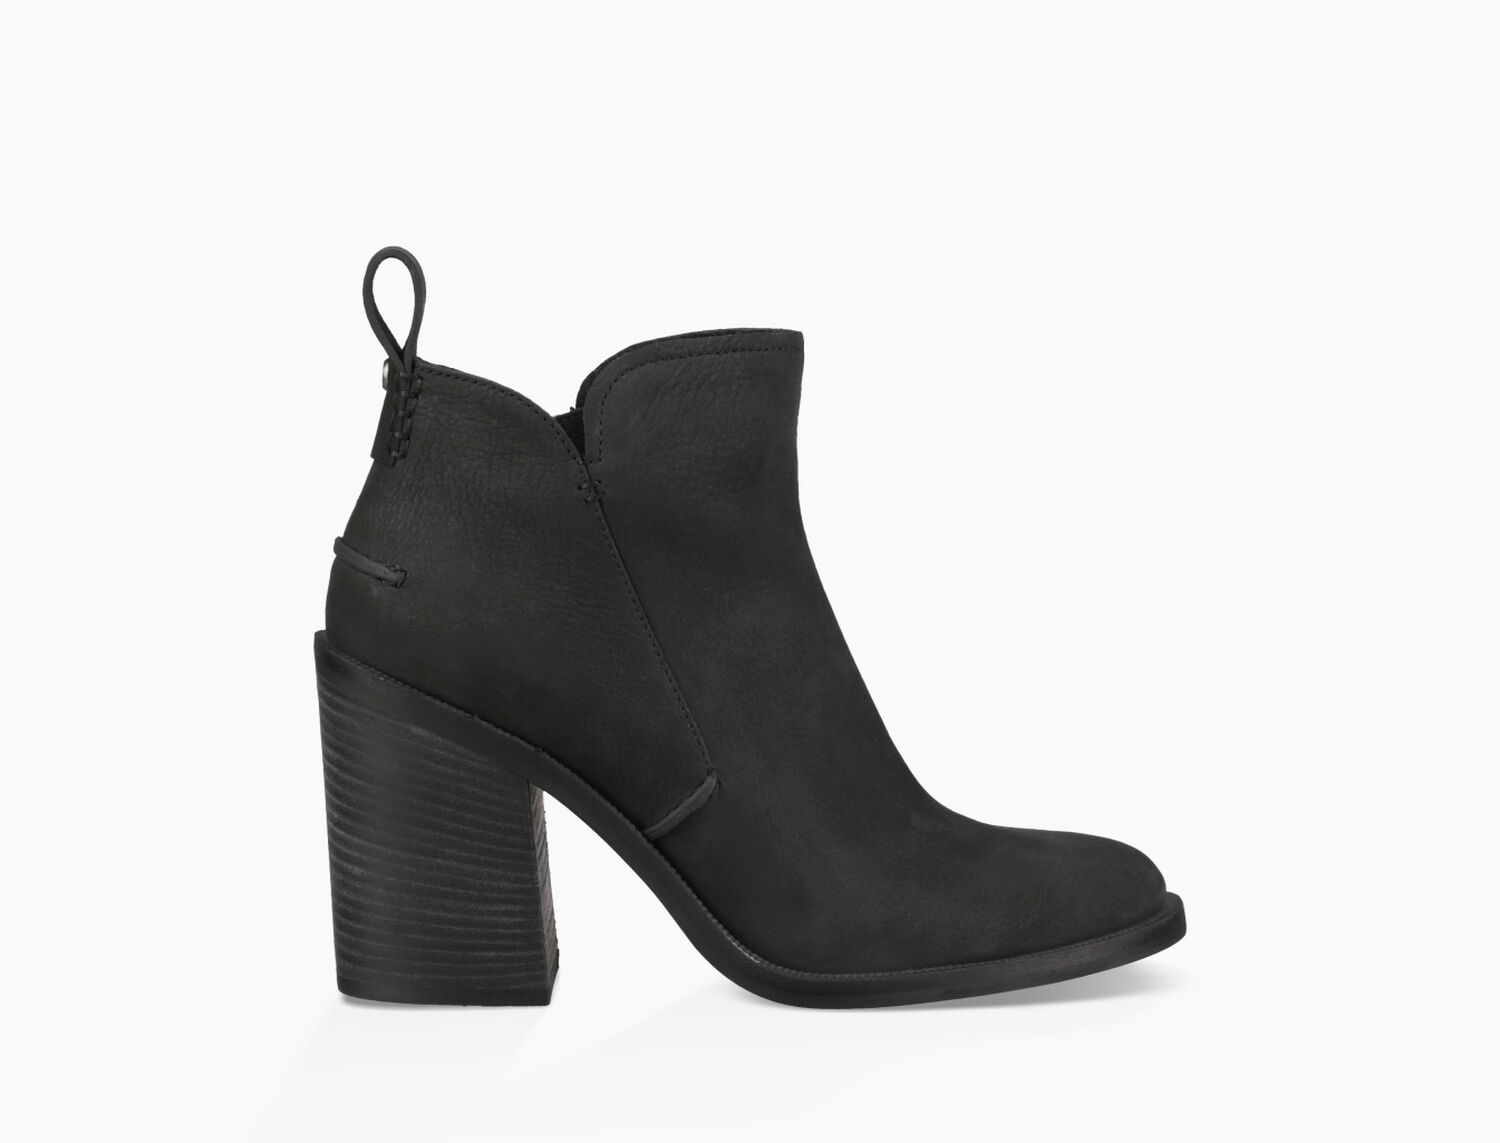 UGG Women's Pixley Boots - The perfect clearance item